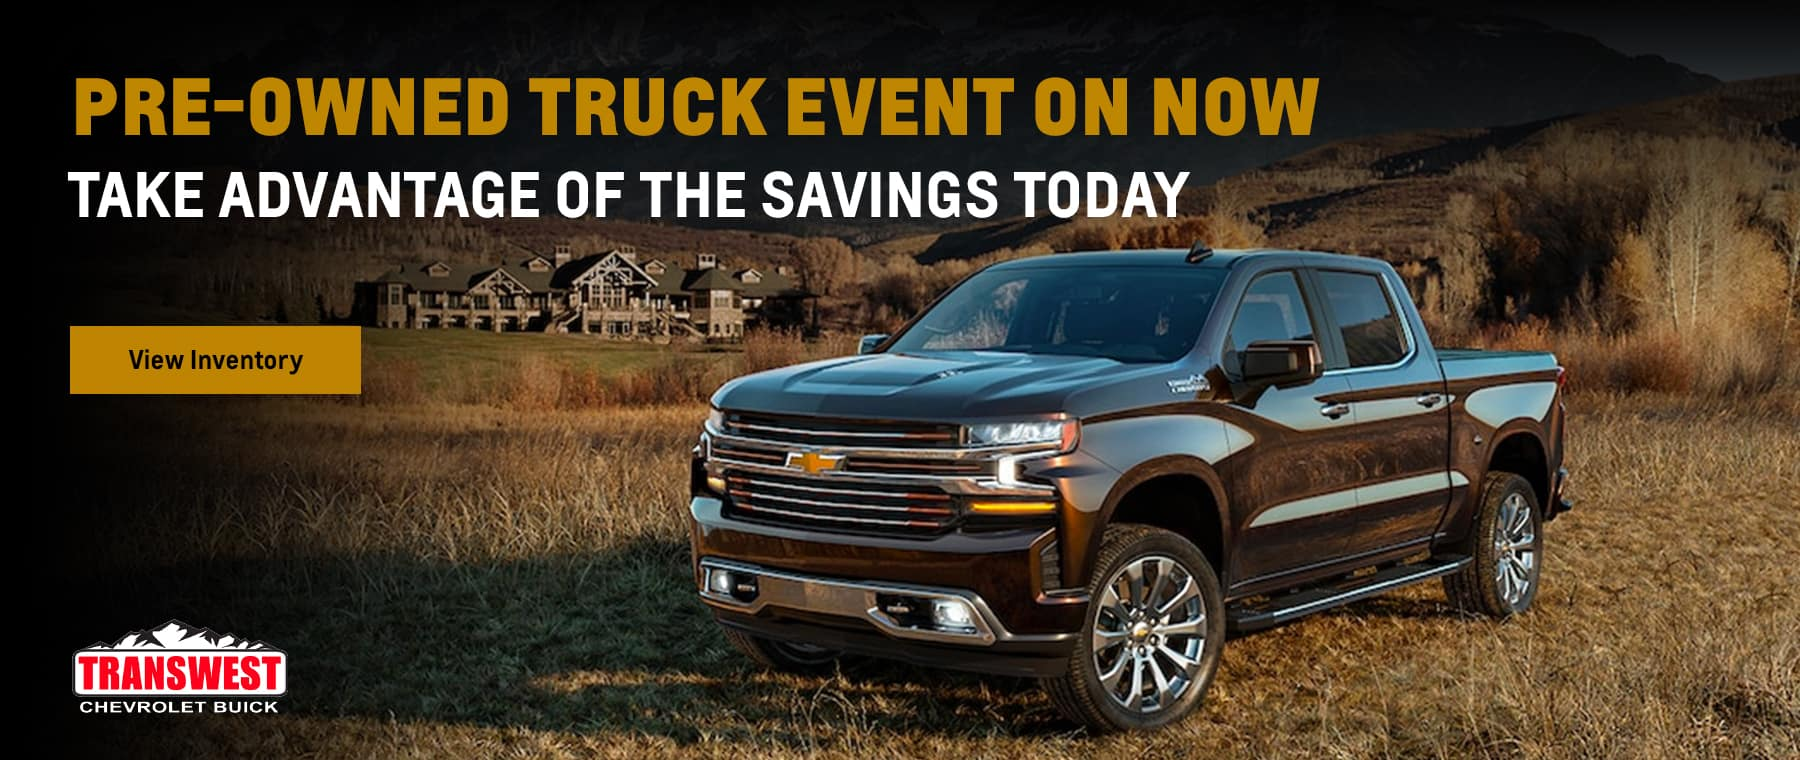 Pre-Owned Truck Event on Now Subtext: Take Advantage of the Savings Today